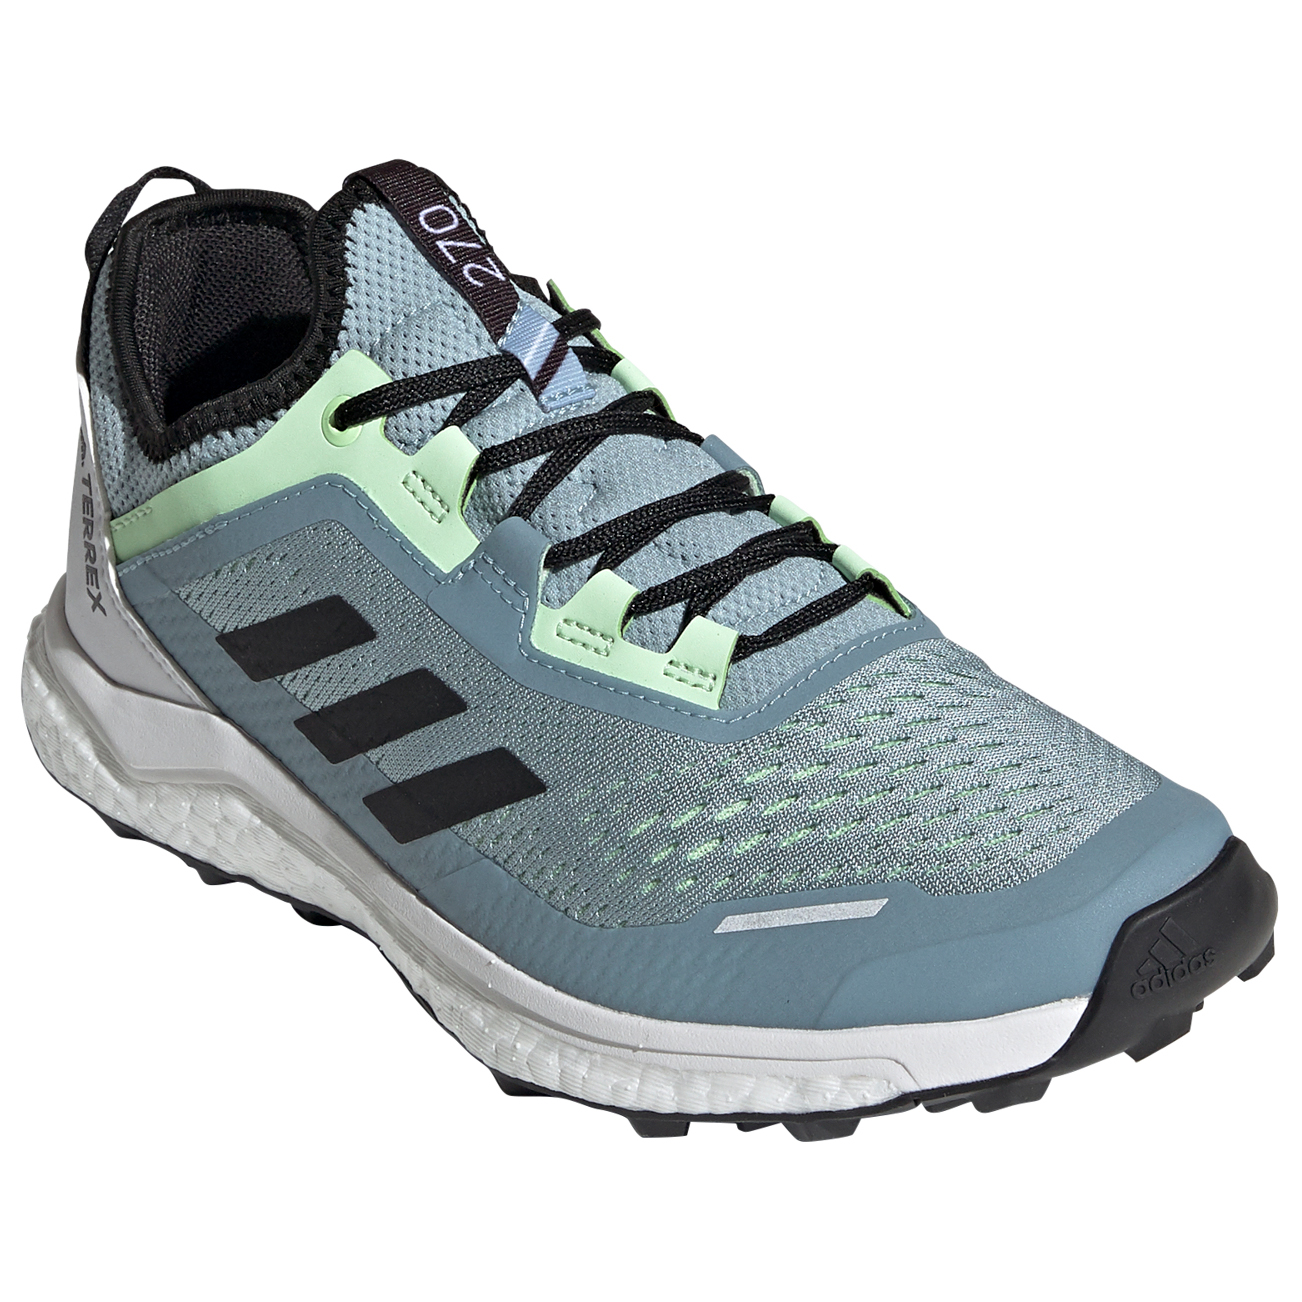 adidas - Women's Terrex Agravic Flow - Trail running shoes - Ash Grey /  Core Black / Glow Green | 4 (UK)